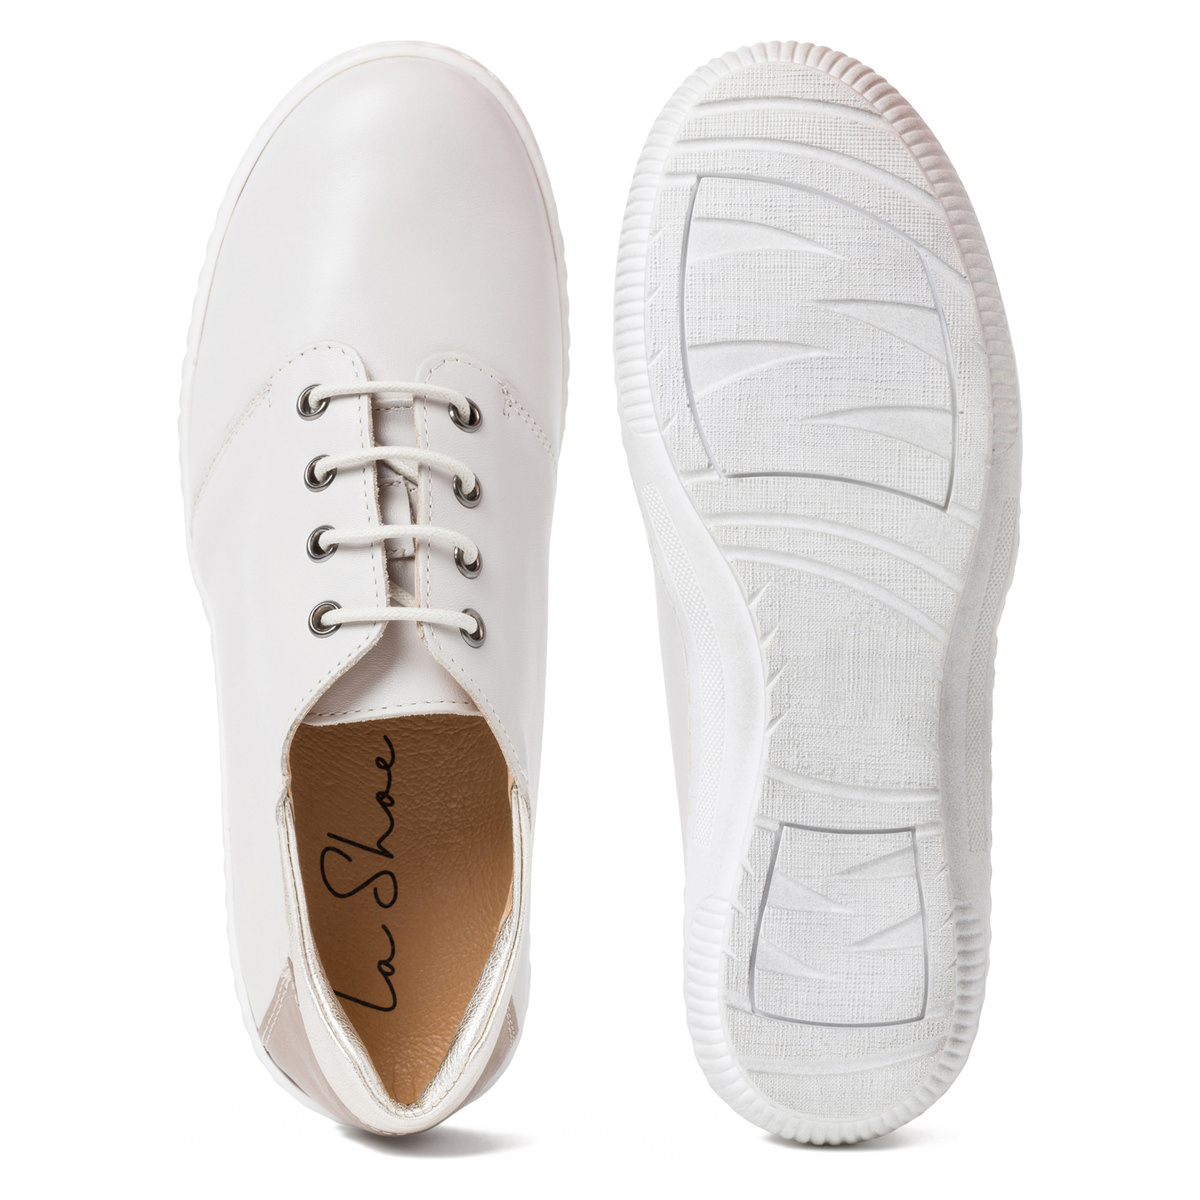 Sneaker Clean-Chic Offwhite saeMmIj